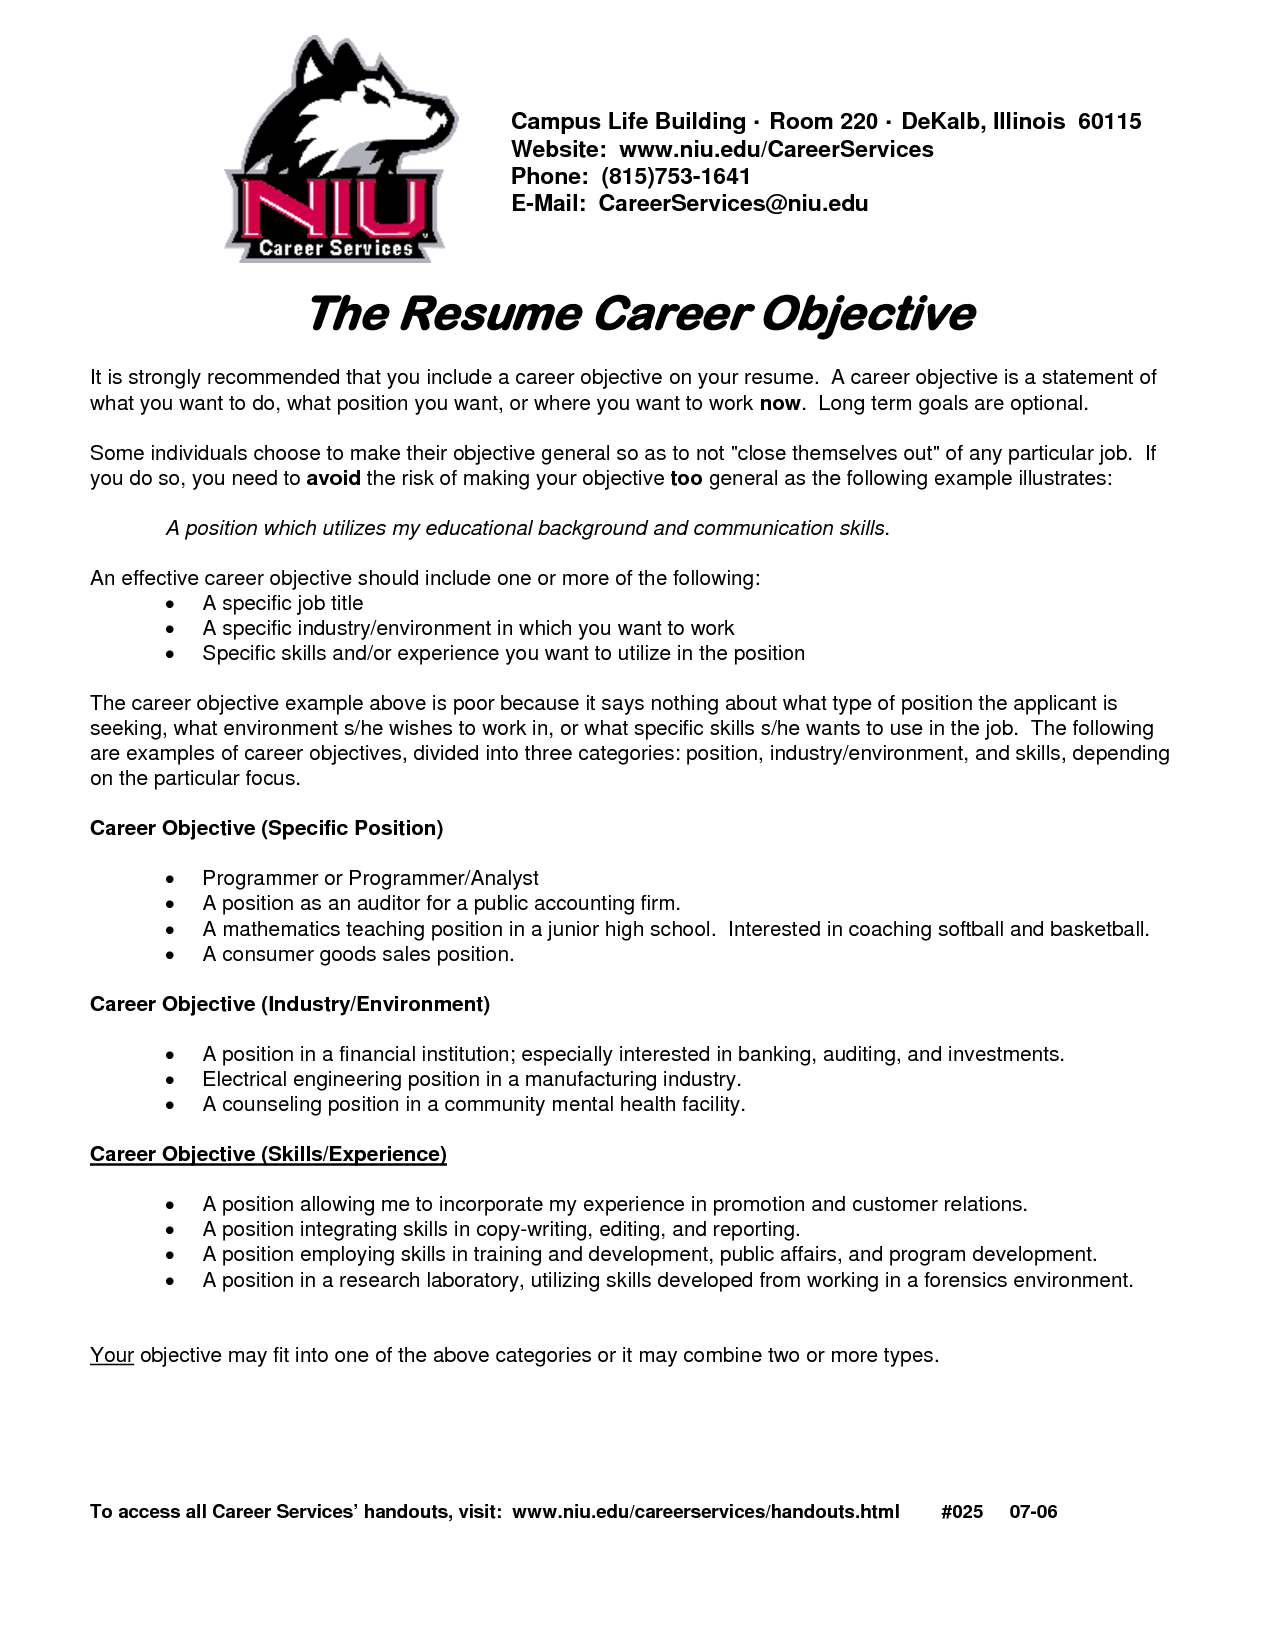 student sample resume for it professional. Resume Example. Resume CV Cover Letter